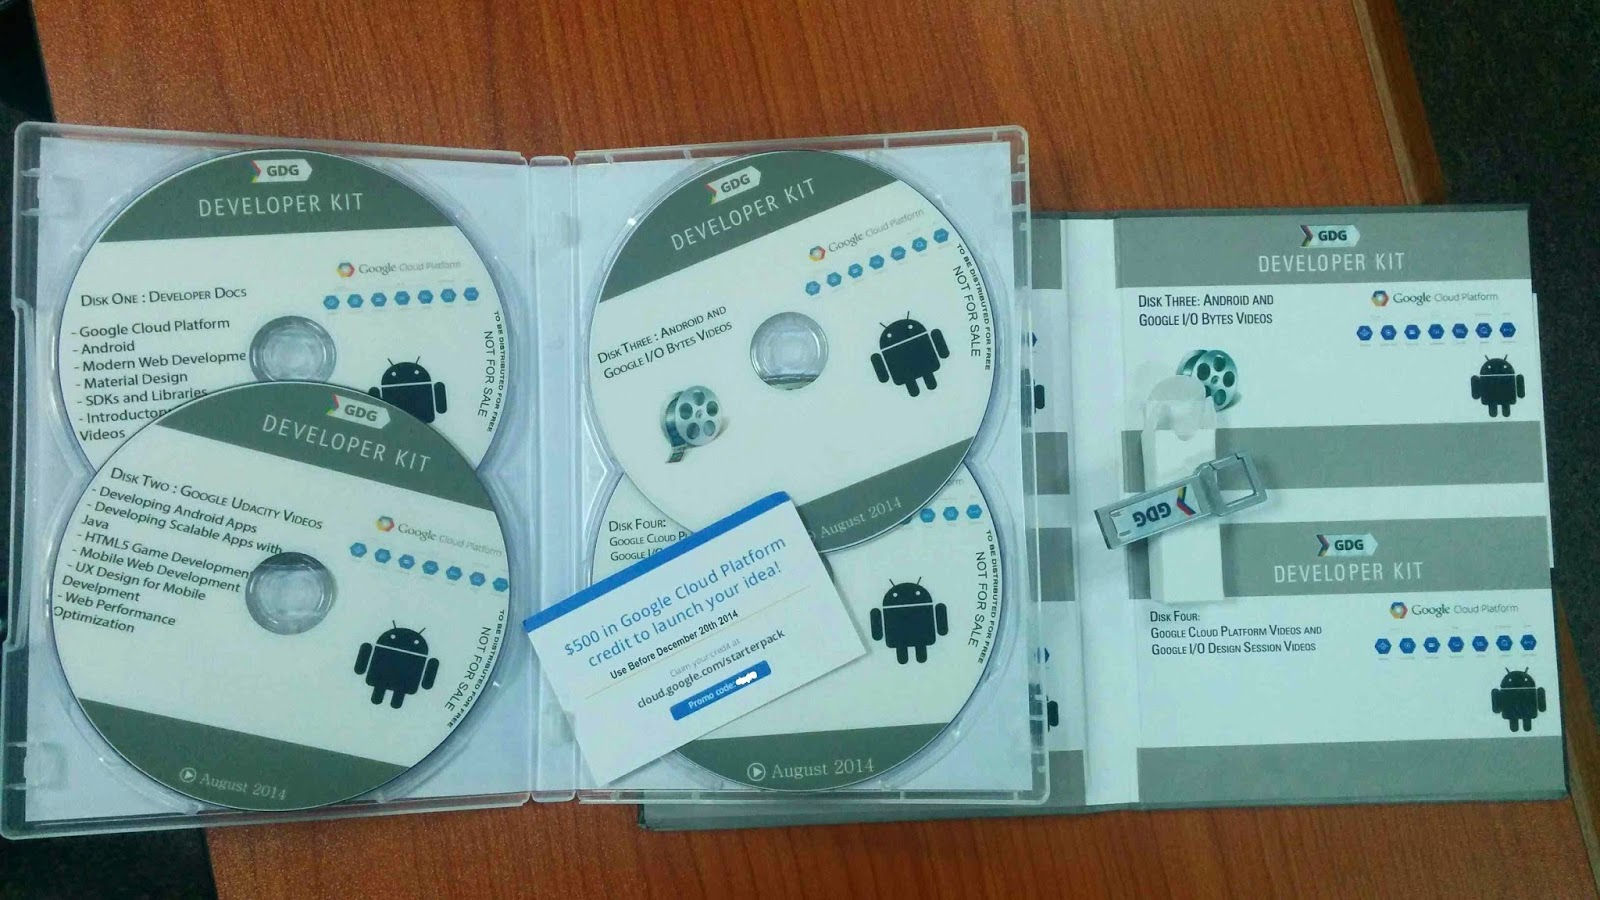 Google offer Android  Development Kit Offline in DVD, Download Android  Development Kit , all Android  Development Kit , free download Android  Development Kit , Android  Development Kit DVD, Google offer